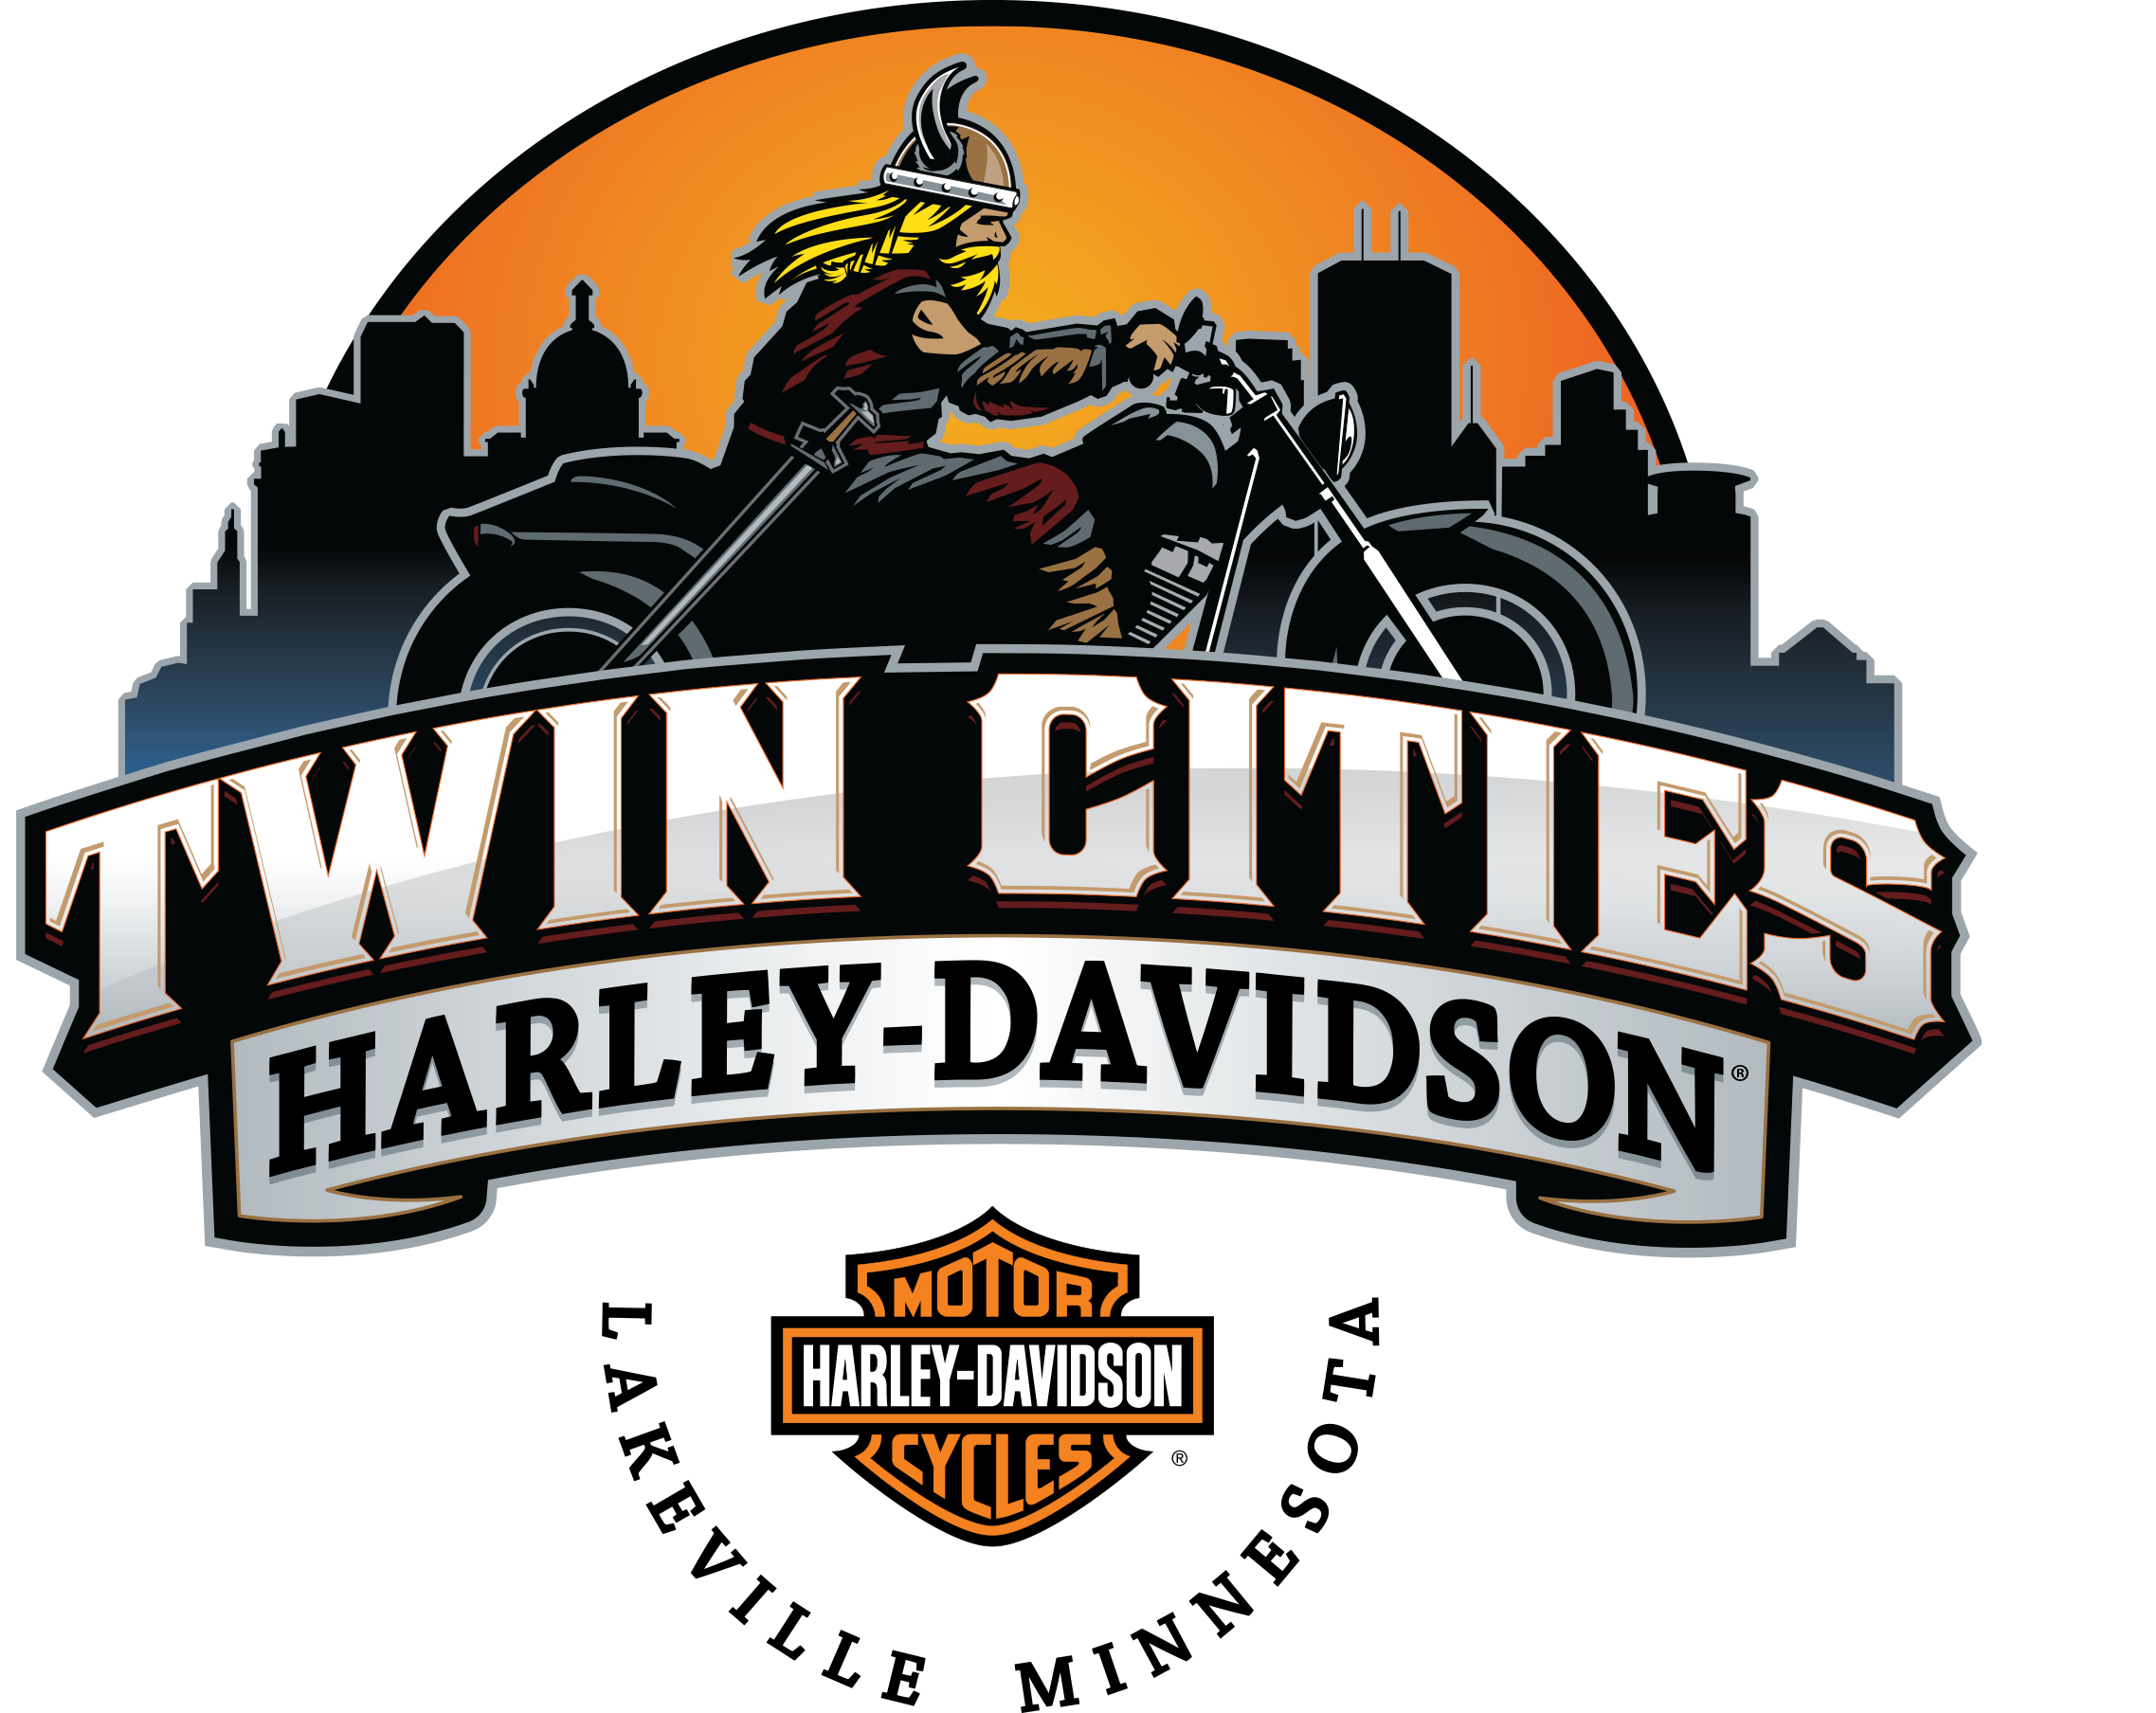 Twin Cities Harley-Davidson® South logo